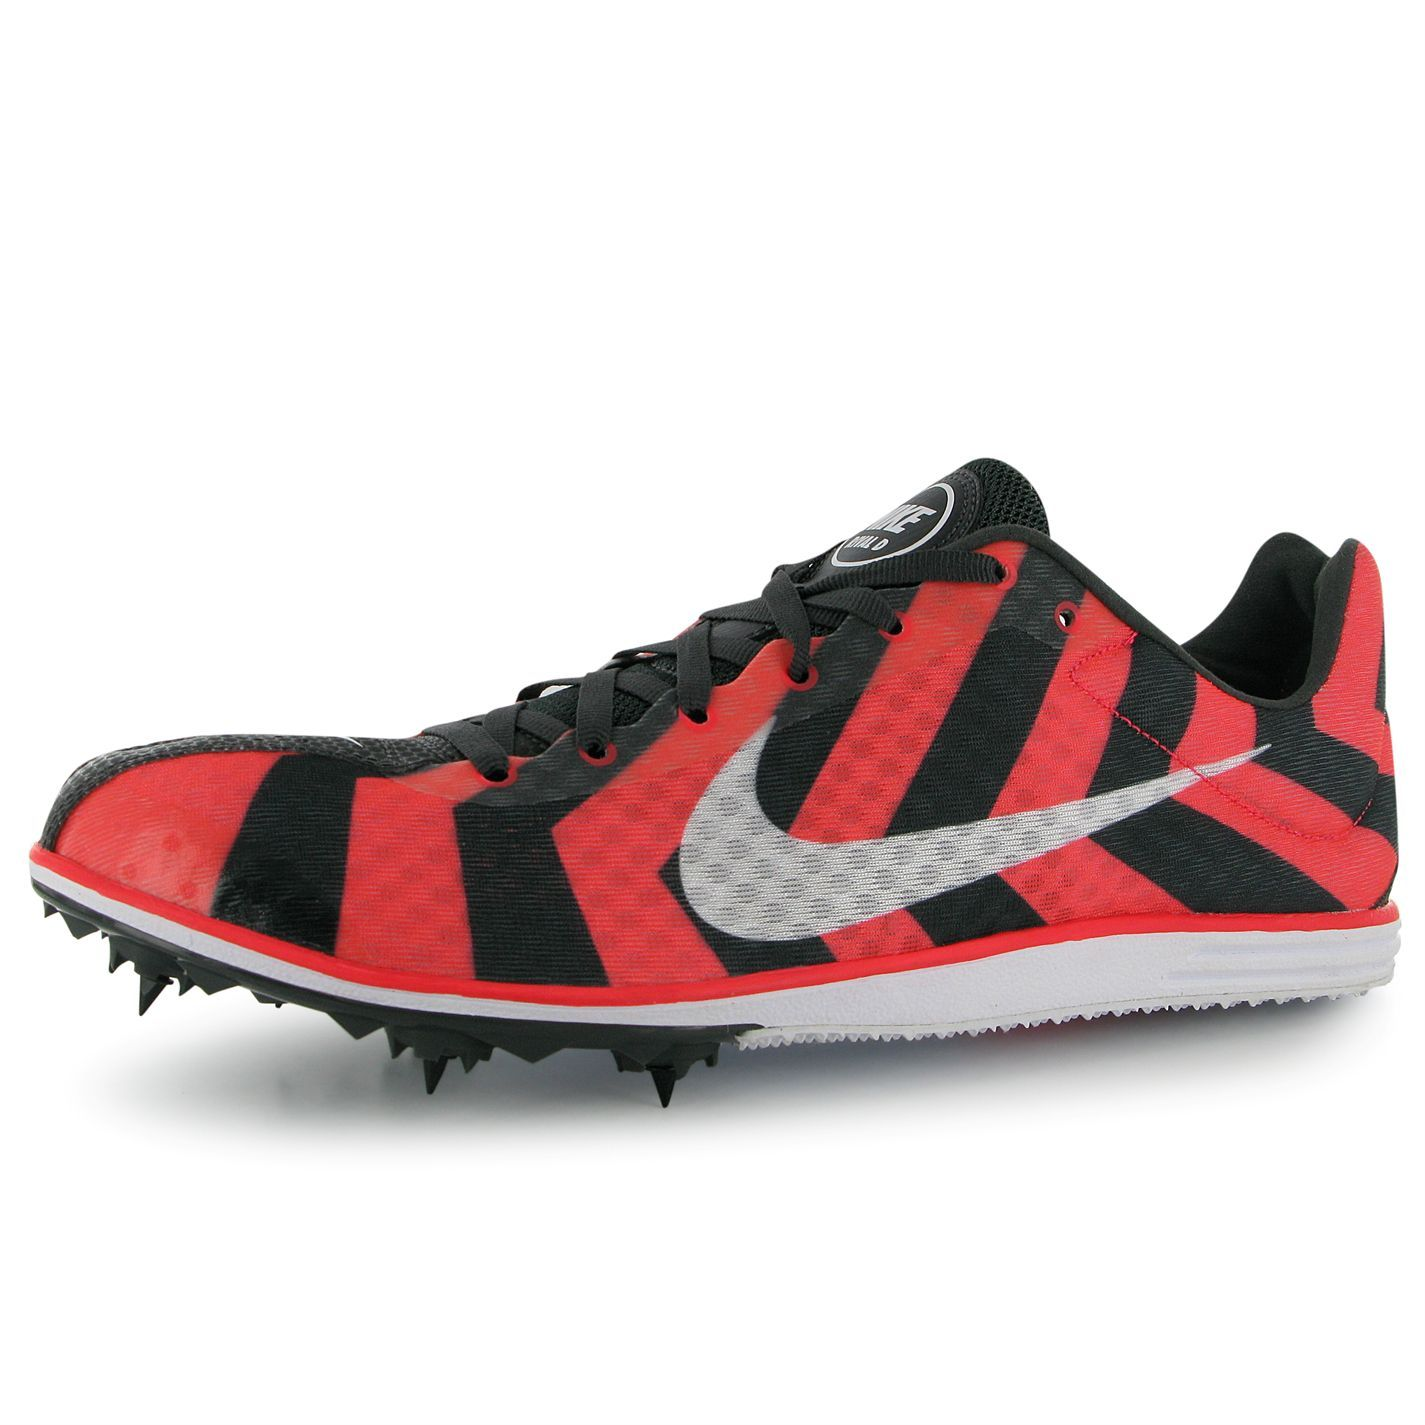 Nike Nike Zoom Rival D 8 Mens Running Spikes Athletics Running Spikes Man Running Nike Zoom